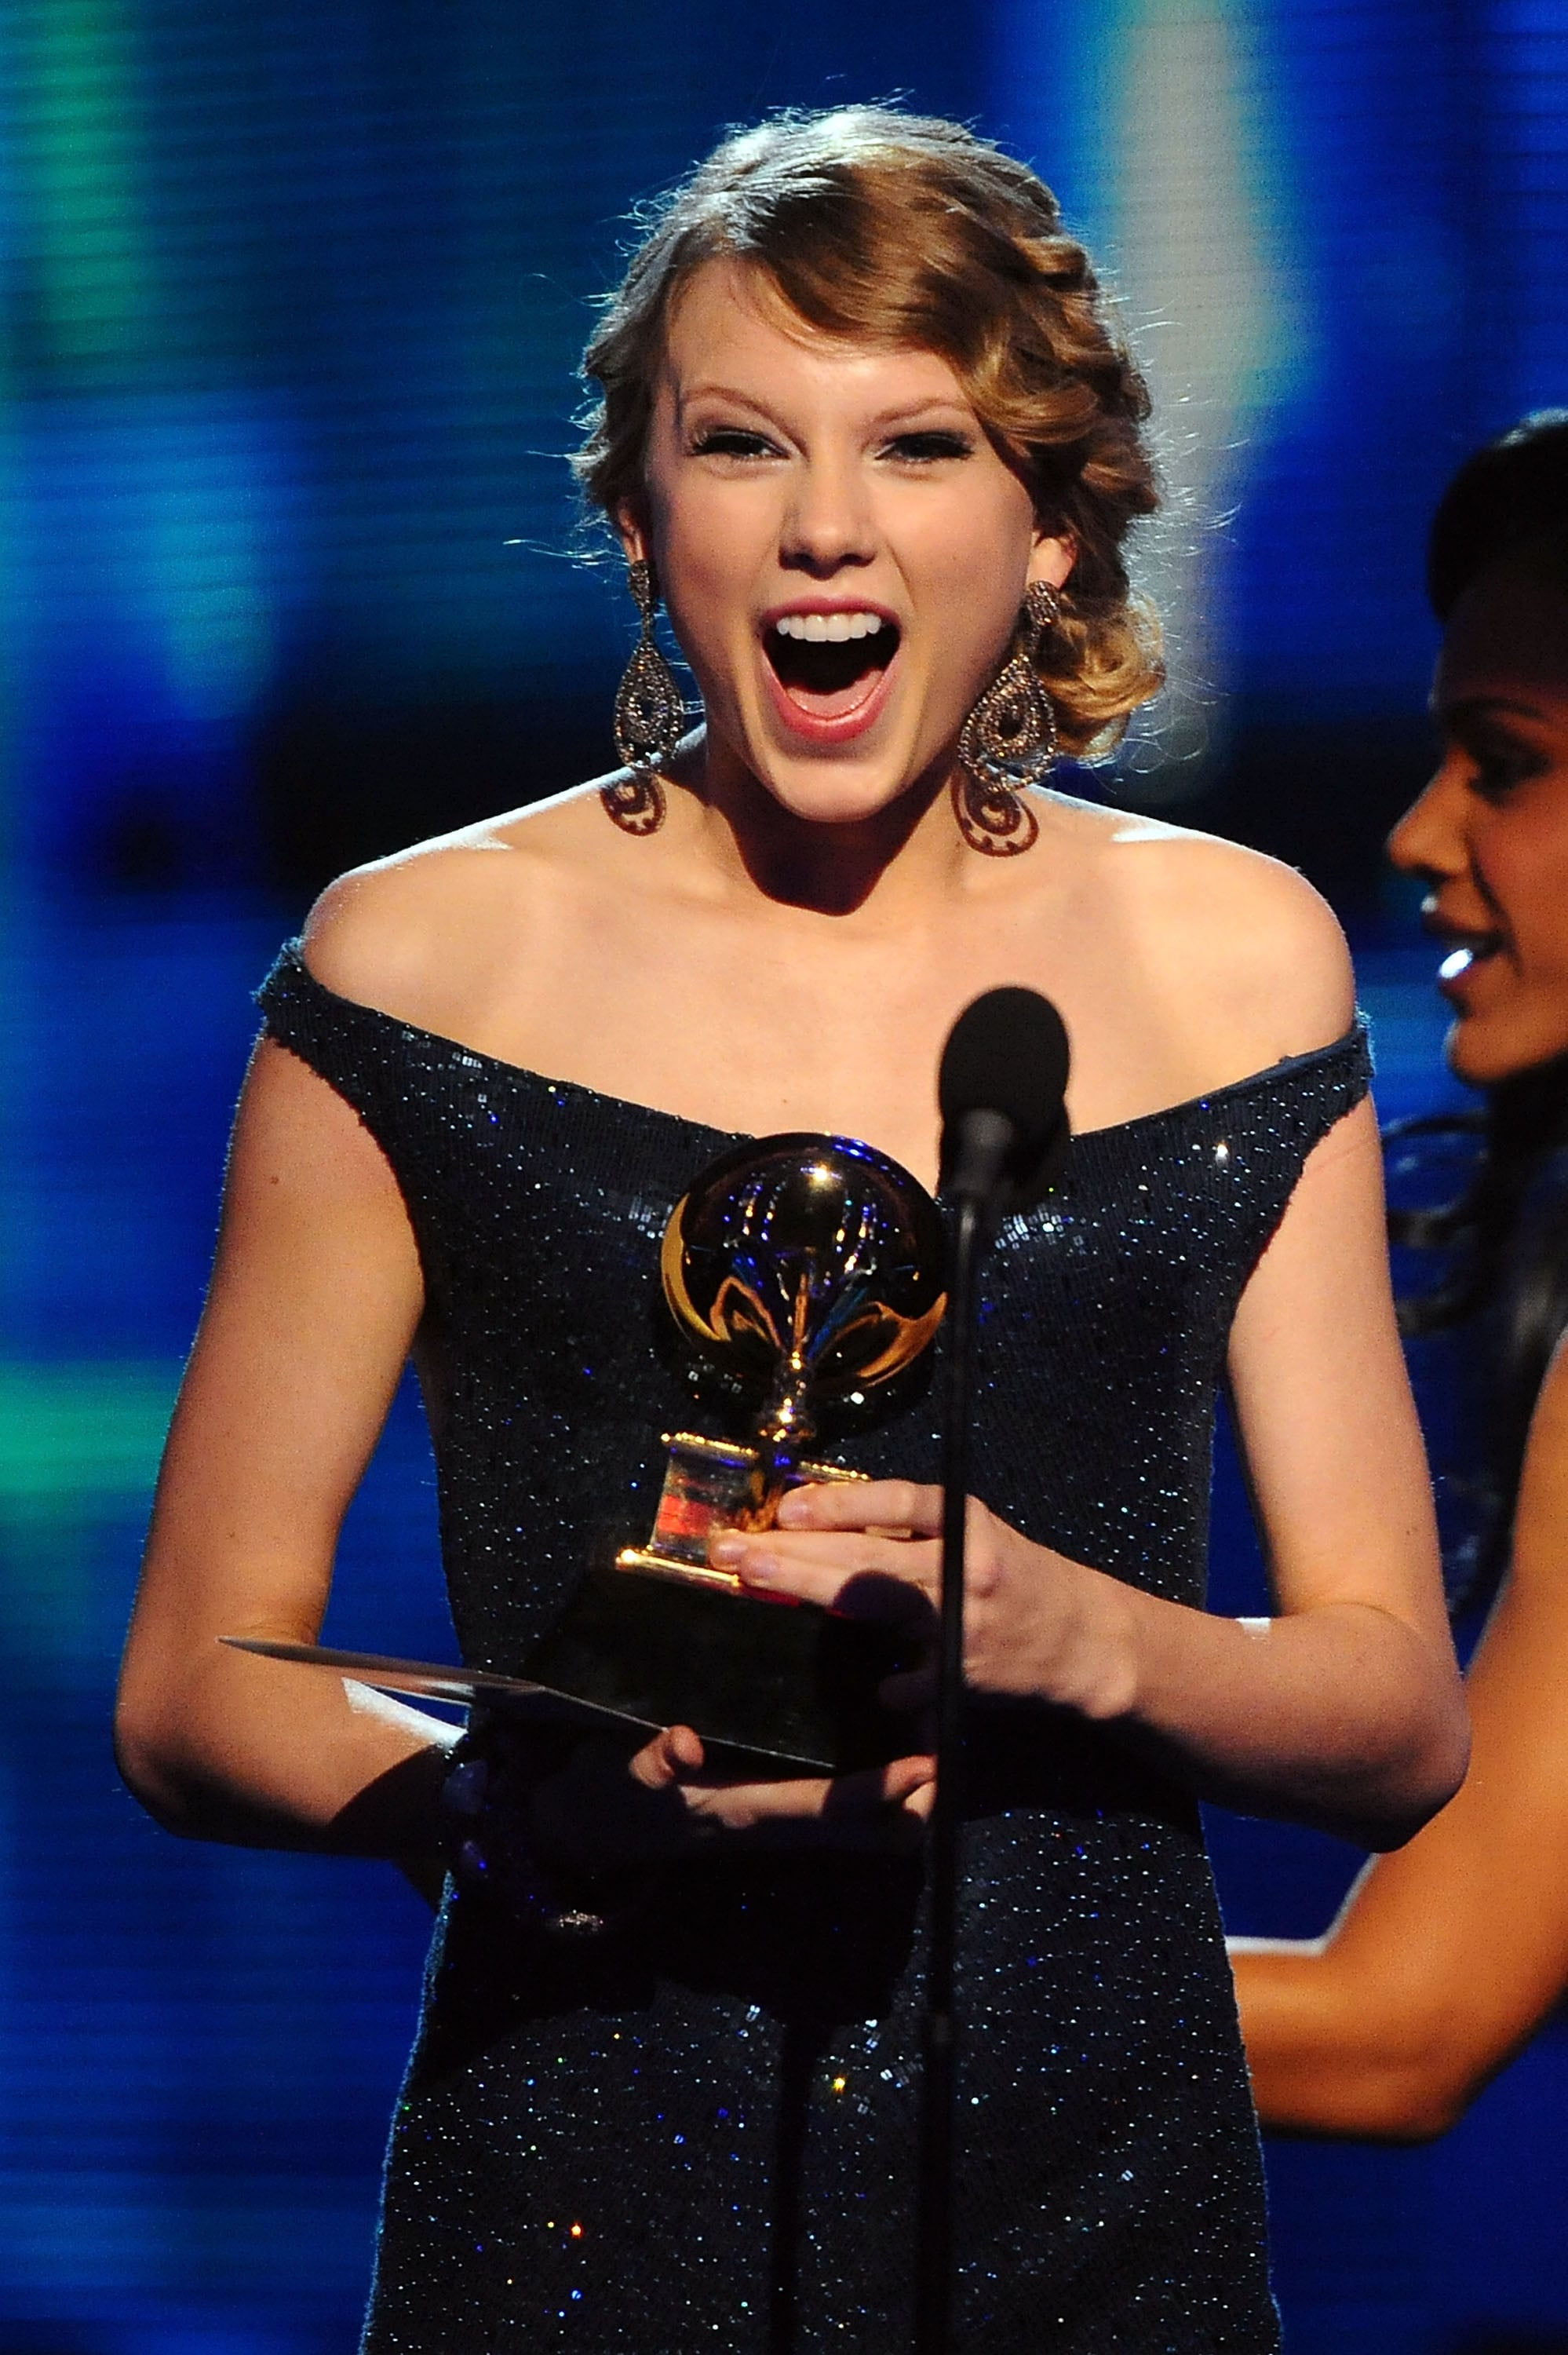 She took the stage to accept a Grammy in January 2010.